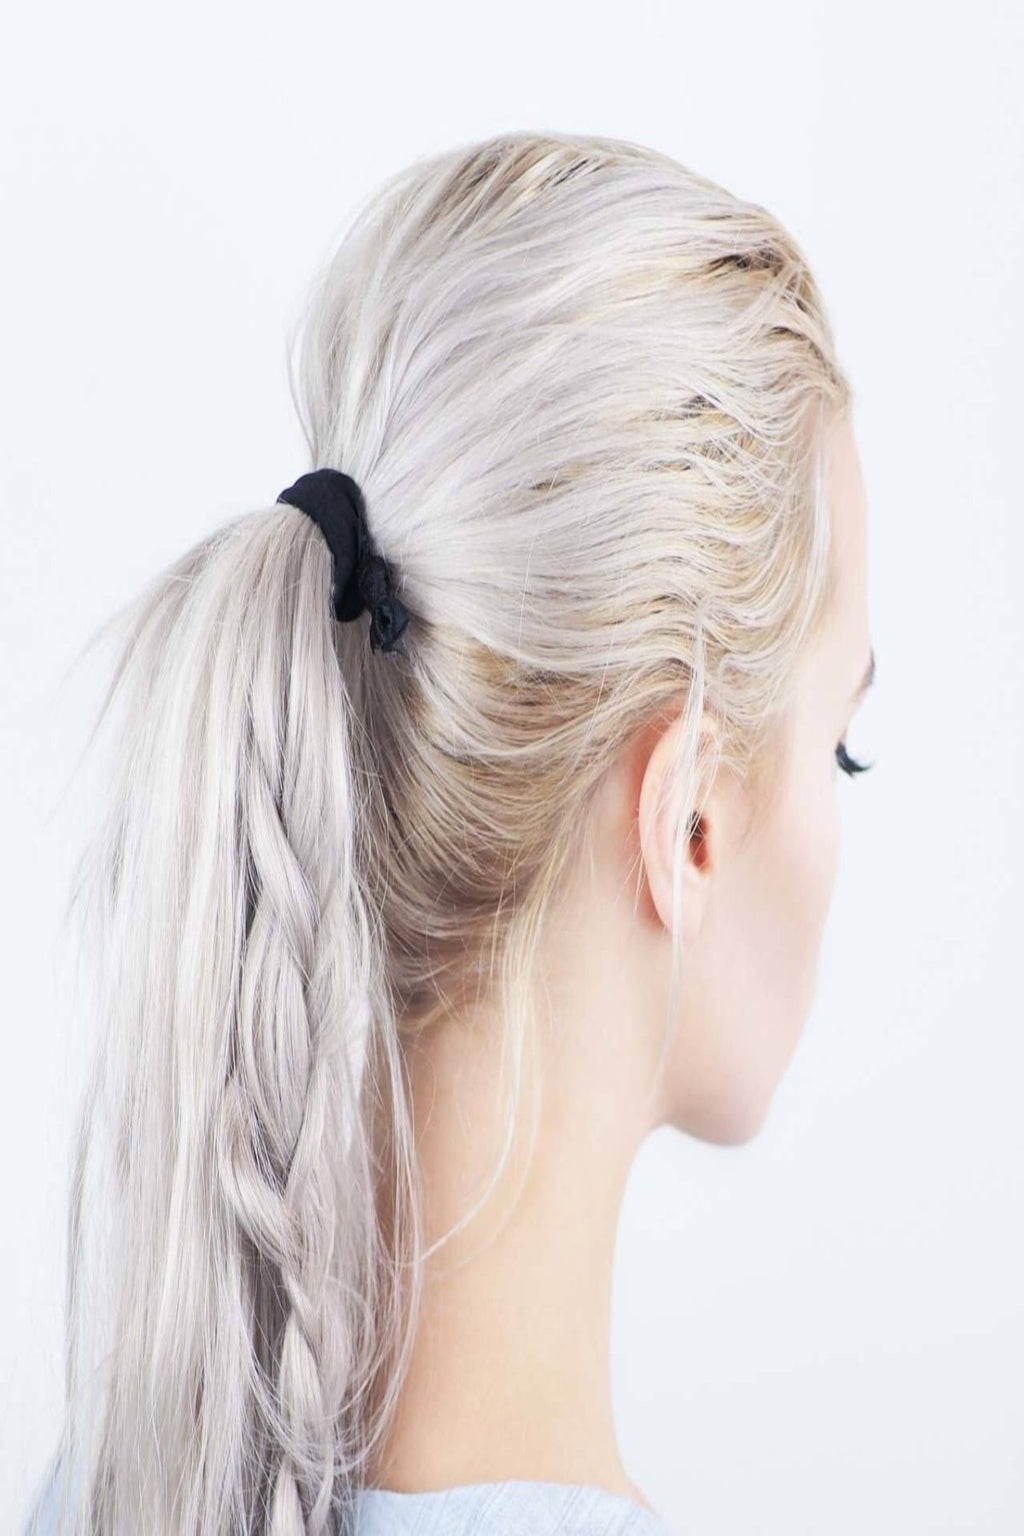 BLACKOUT KNOTTED ELASTIC HAIR TIE SET